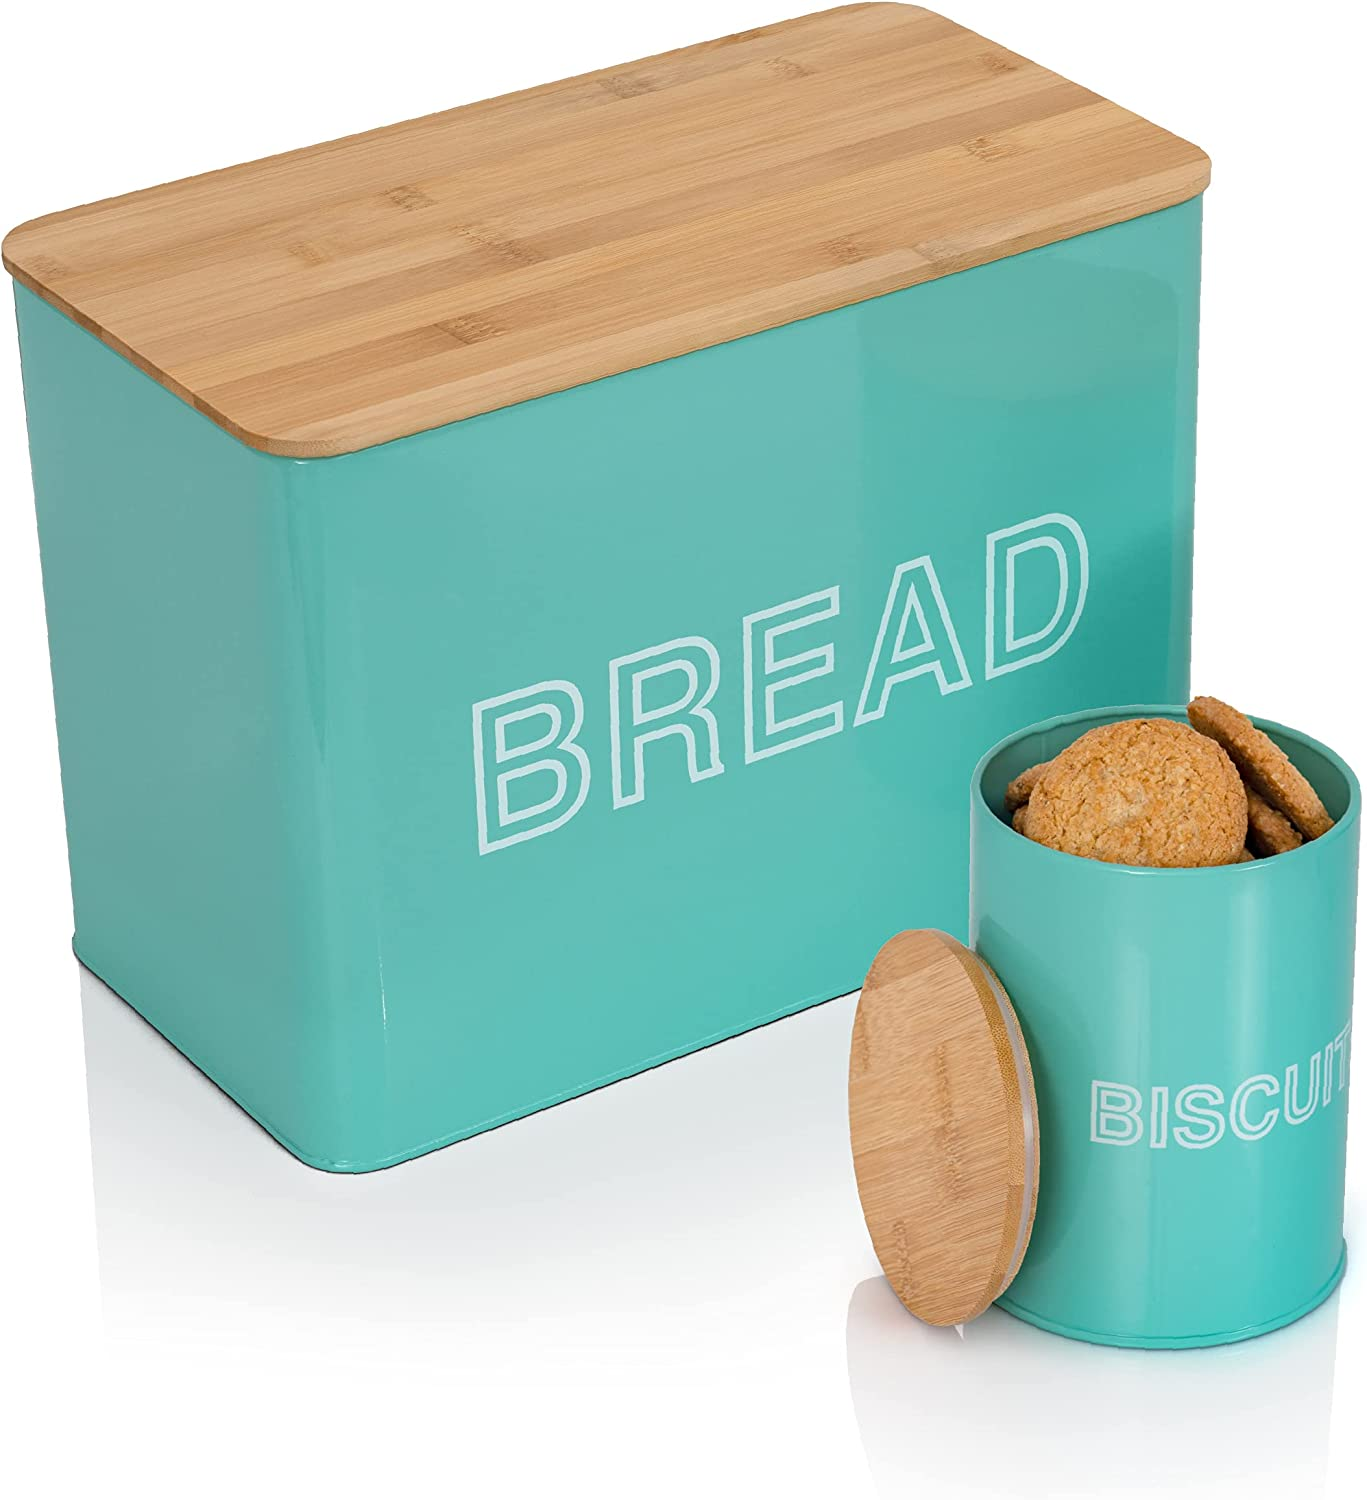 VCHAMP Max 86% OFF Metal Bread Storage Container - Sale special price Rustic Large Extra